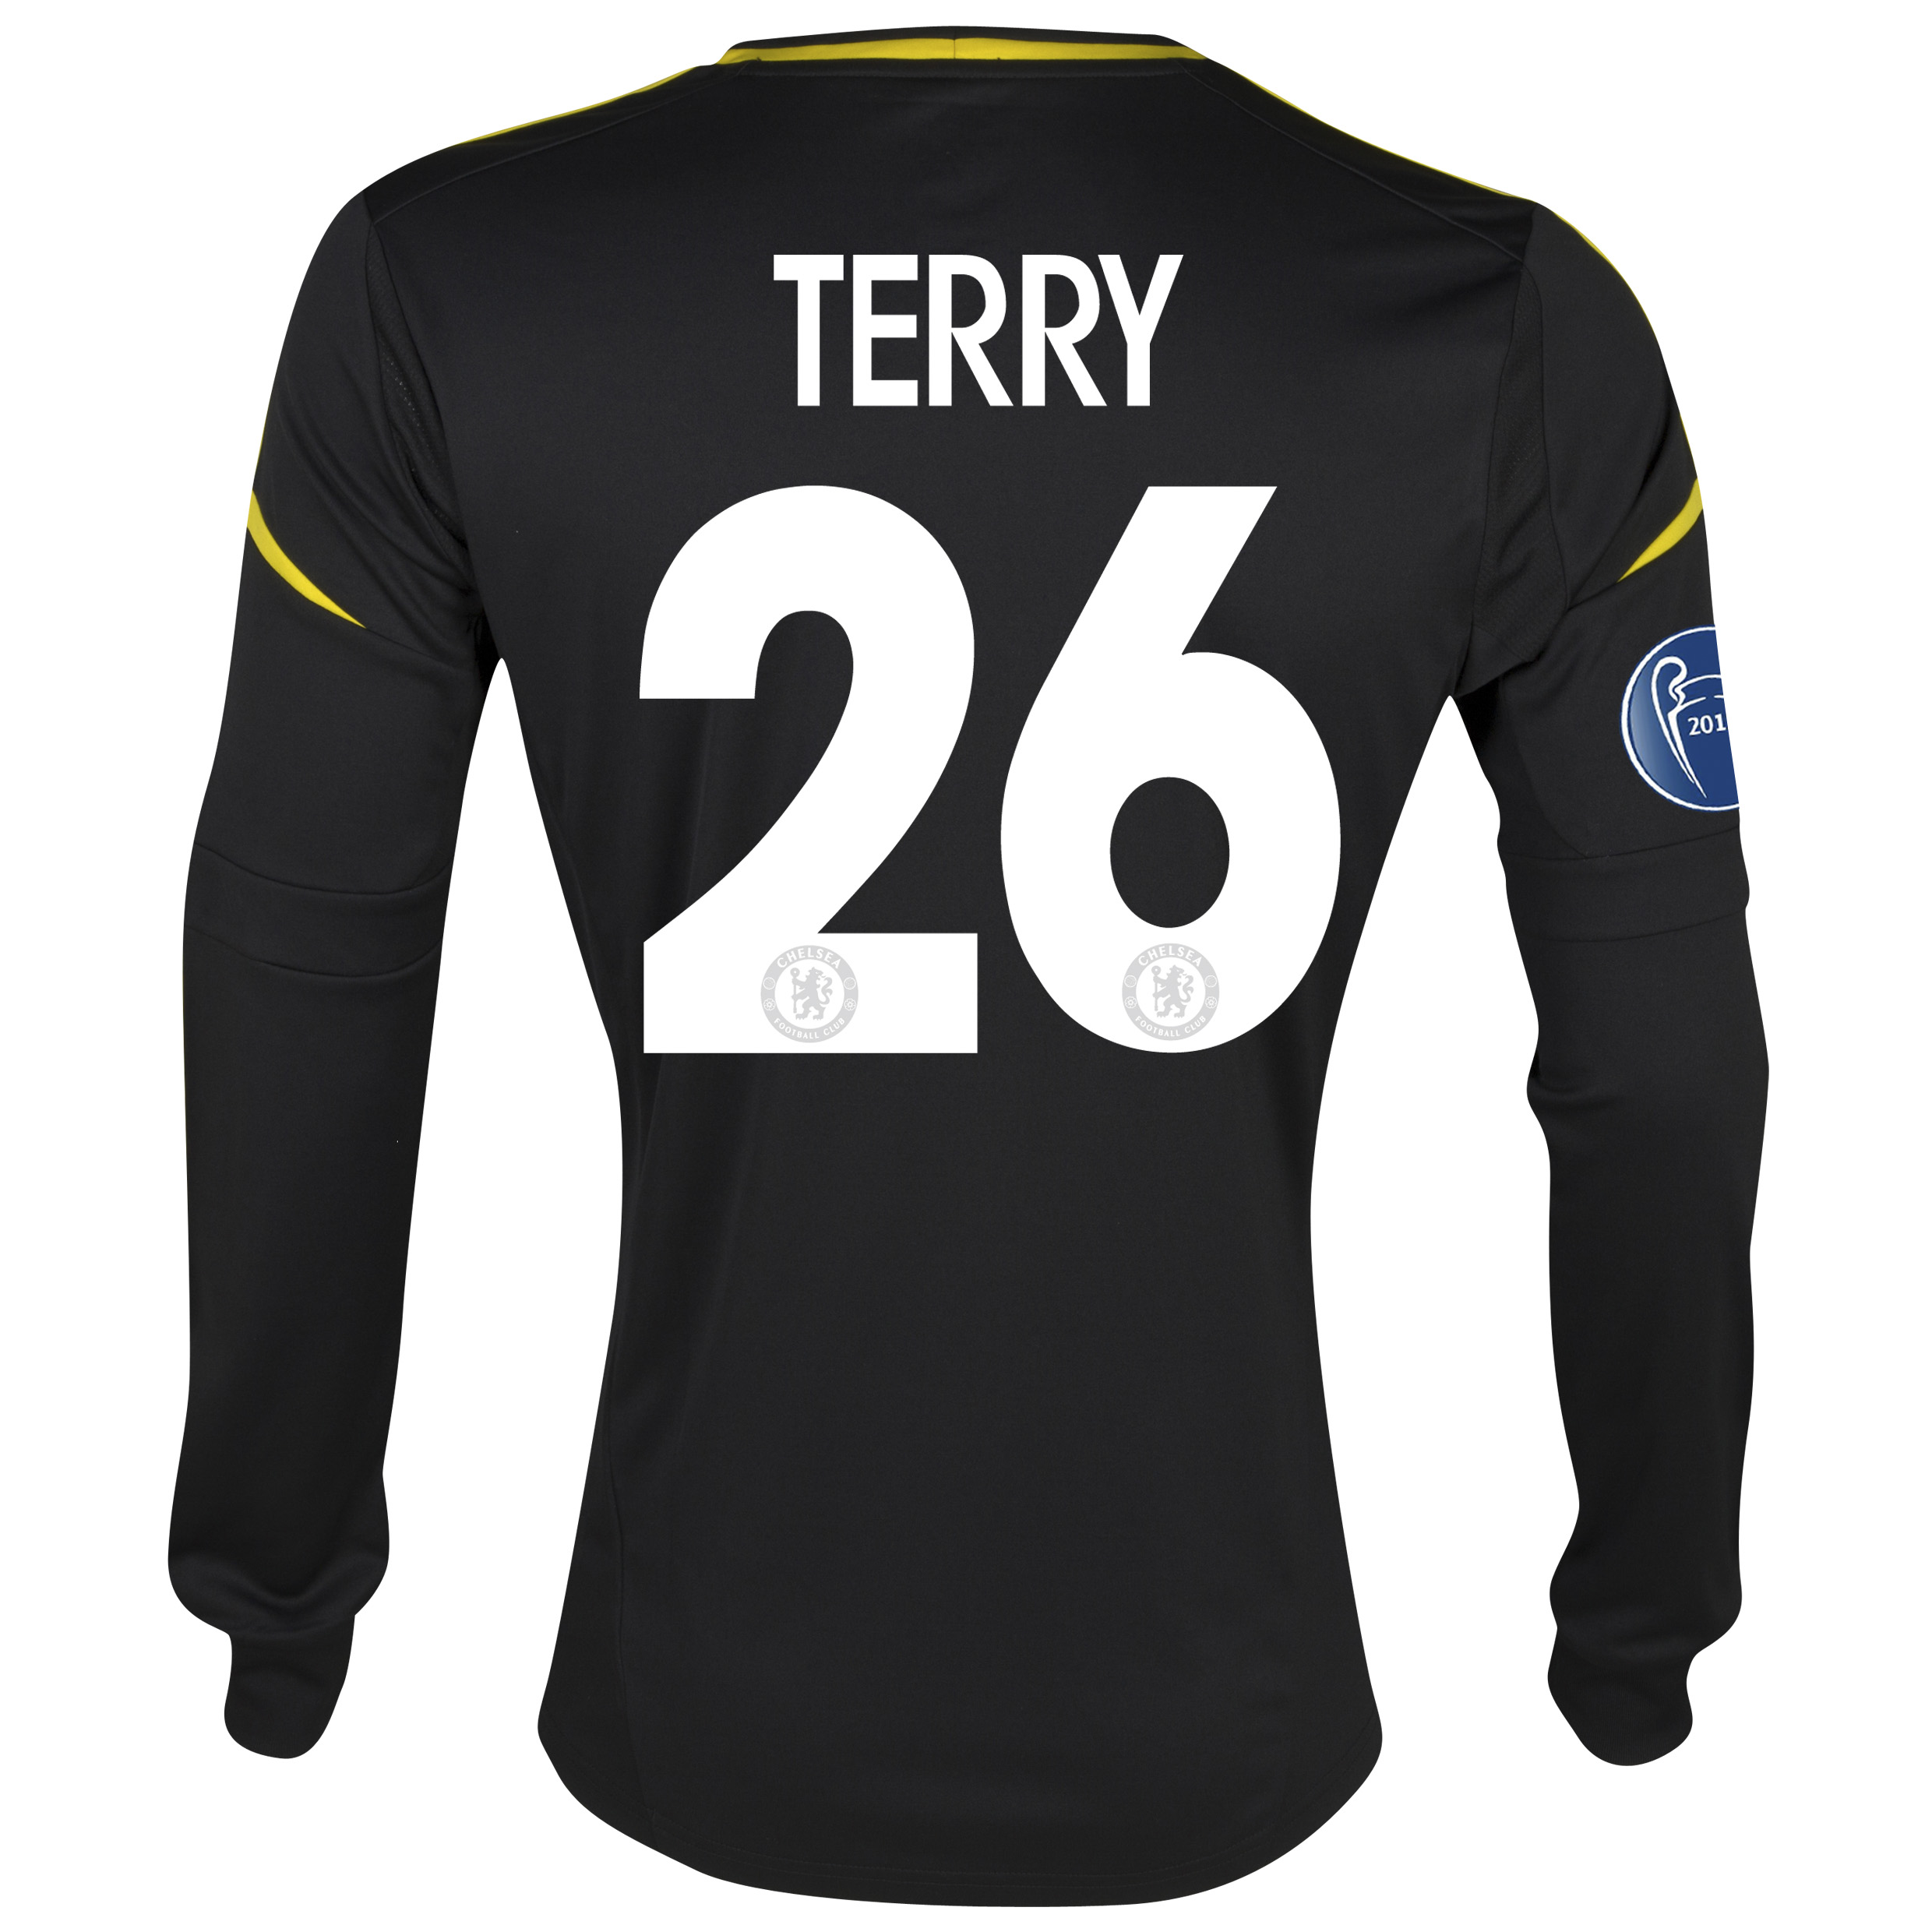 Chelsea UEFA Champions League Third Shirt 2012/13 with Terry 26 printing